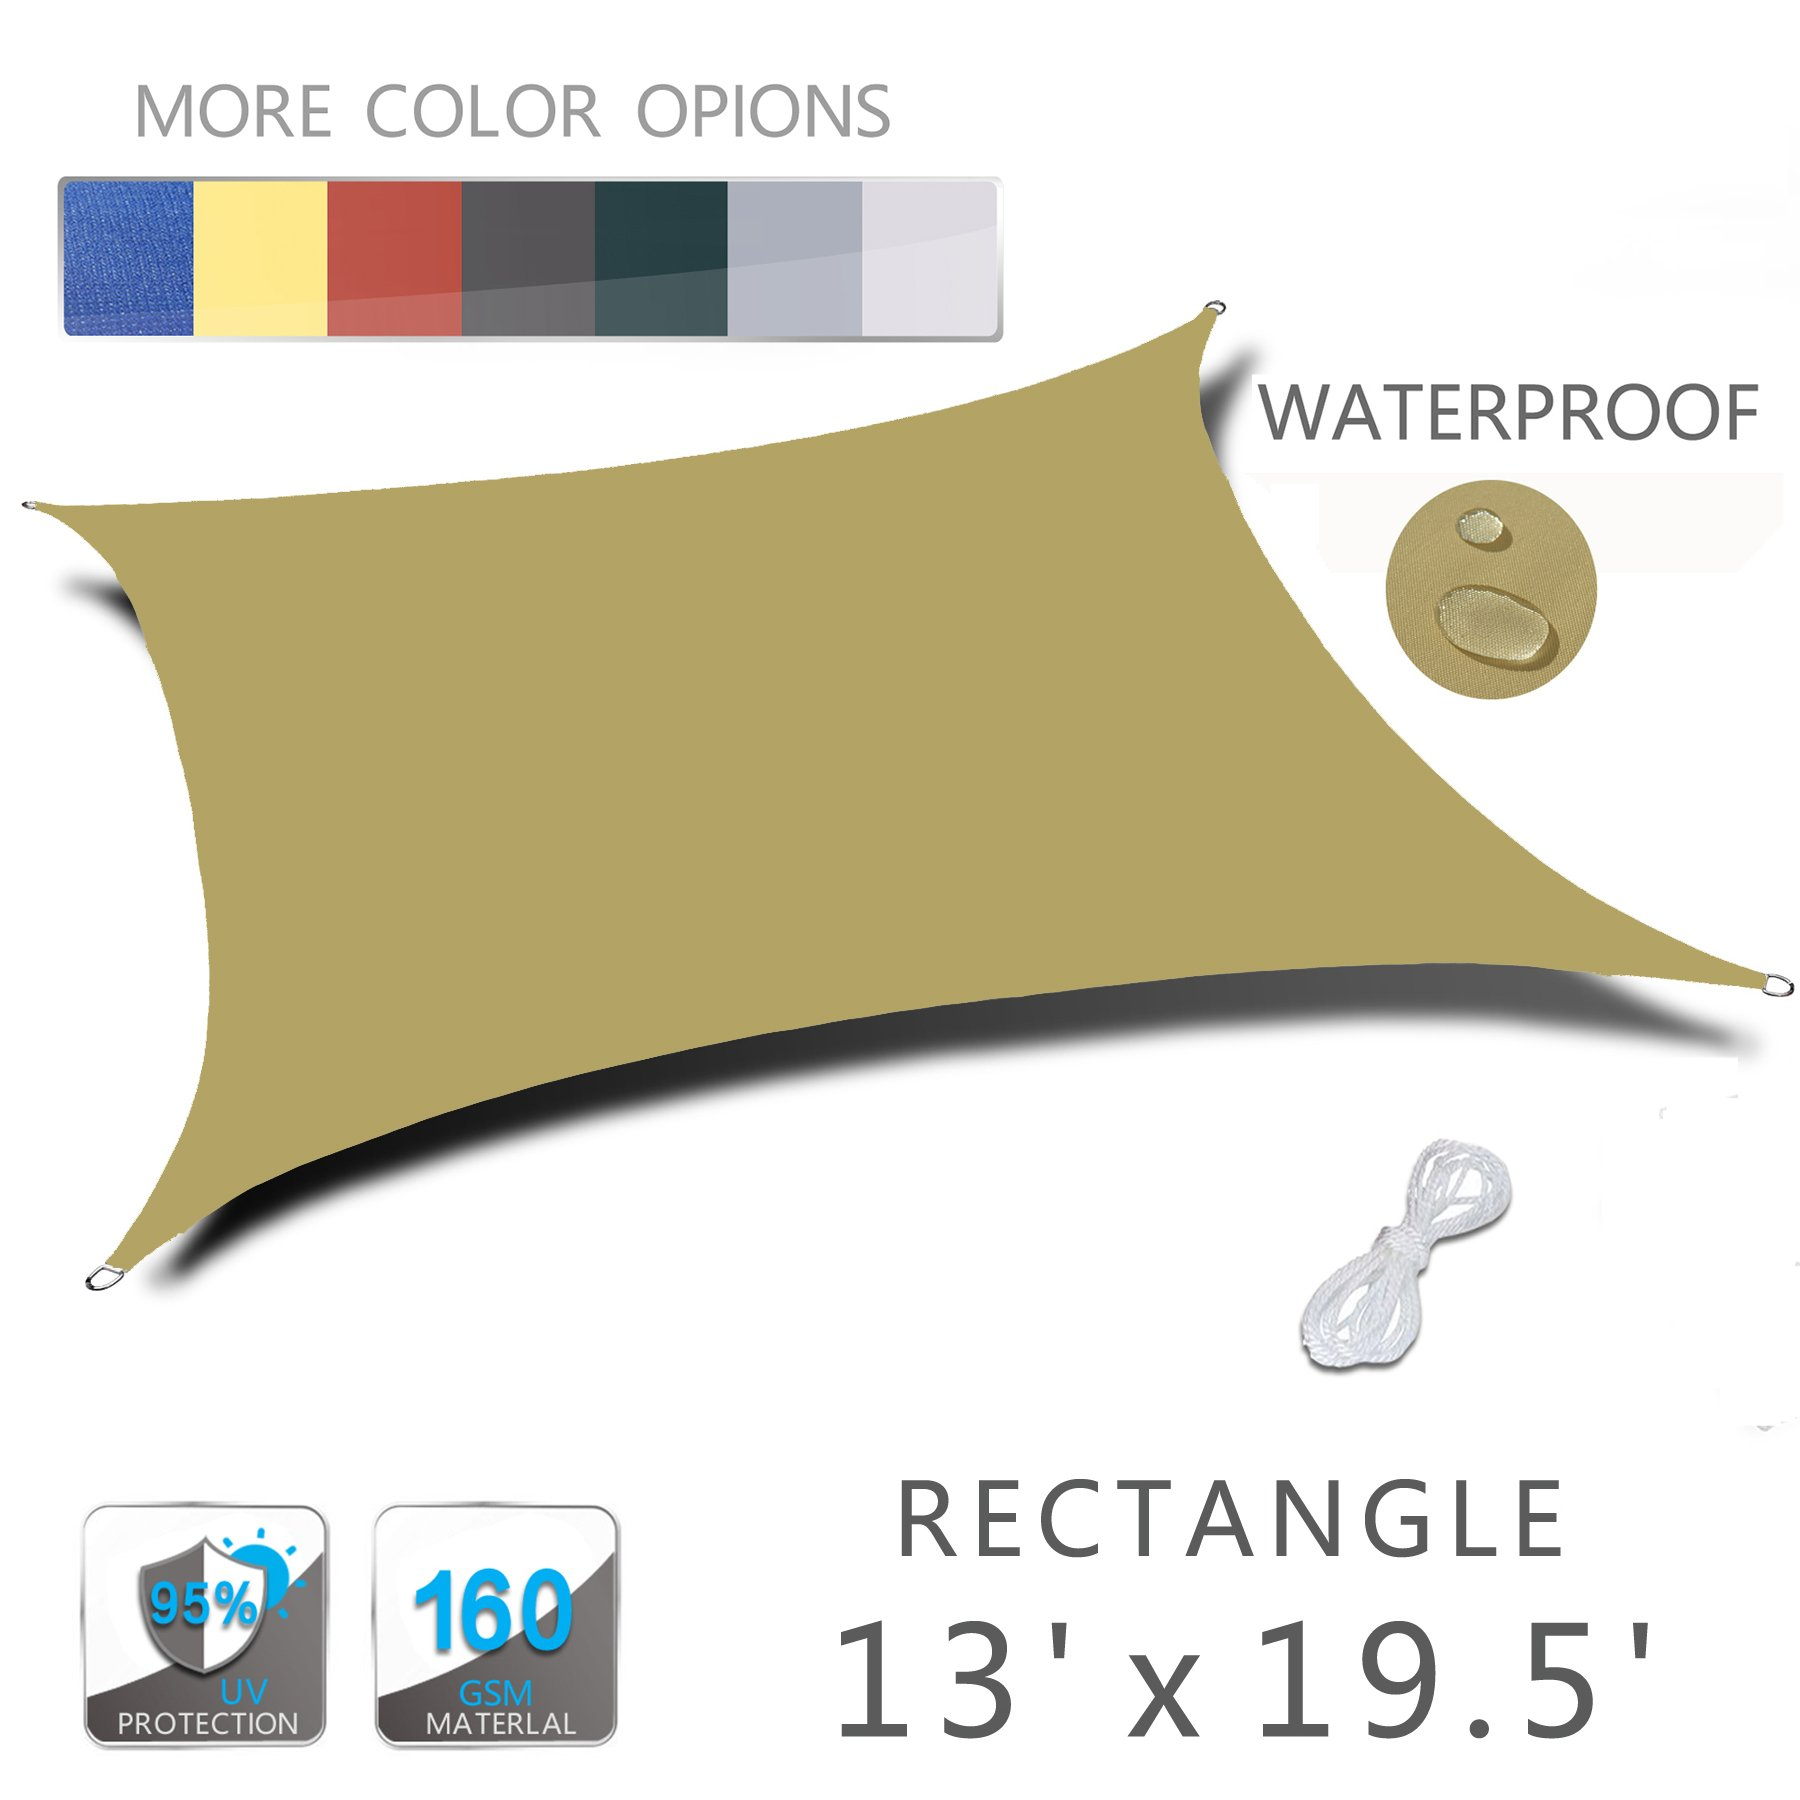 Love Story 13' x 19.5' Rectangle Sand Waterproof Sun Shade Sail Perfect for Outdoor Patio Garden